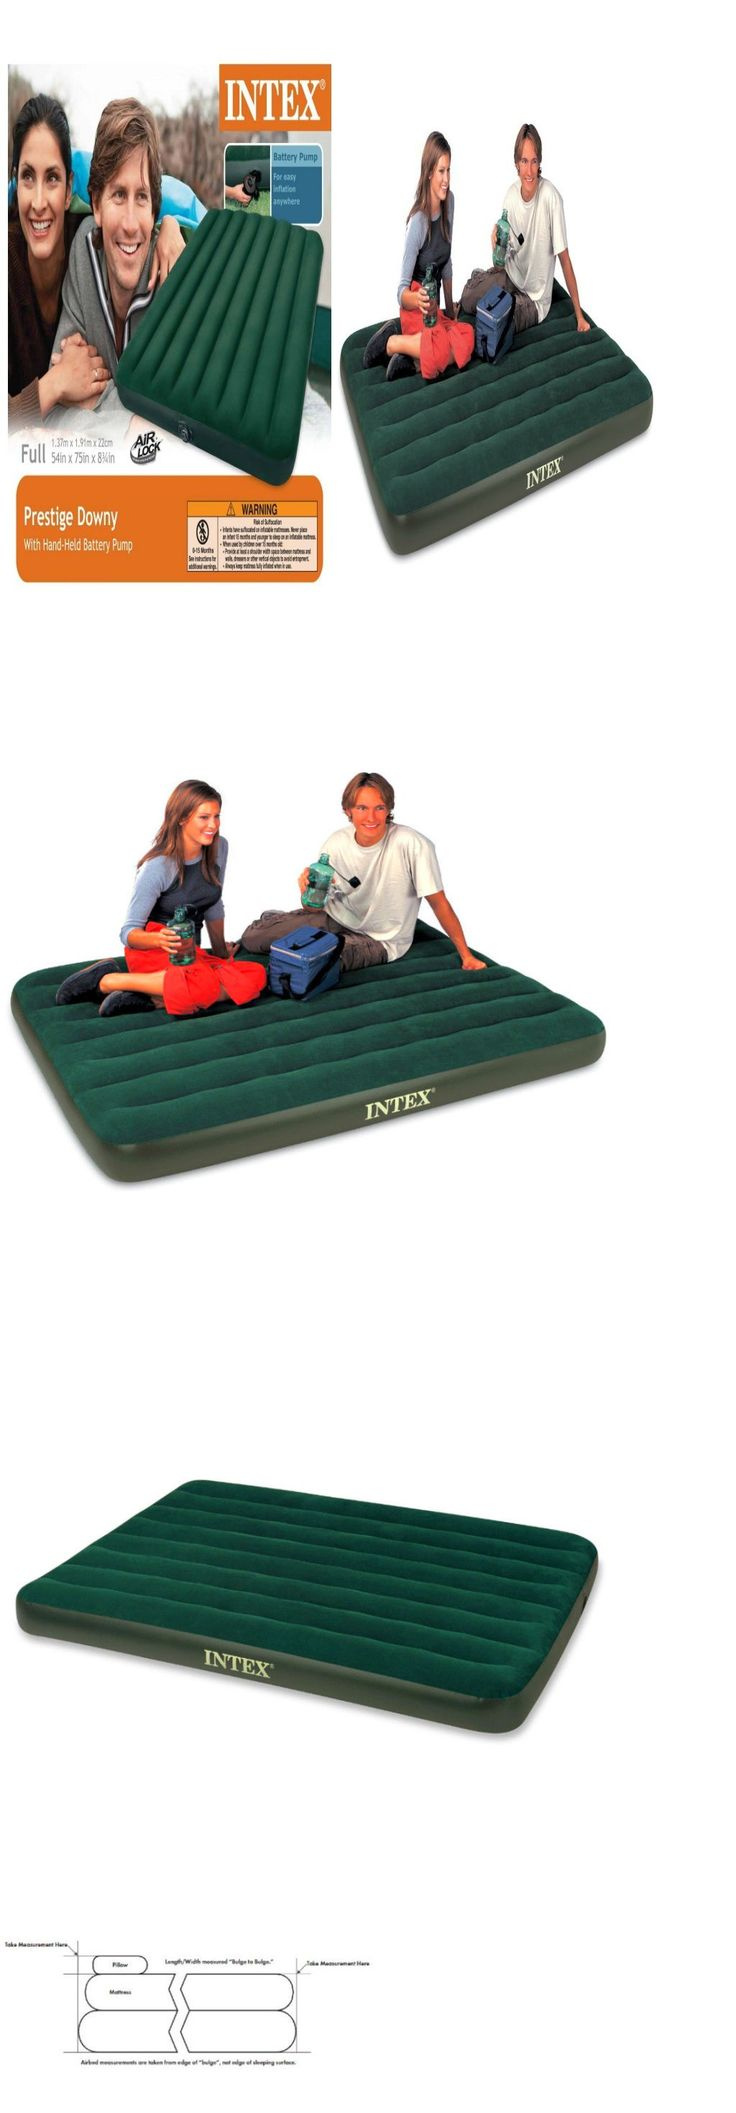 Inflatable Mattresses Airbeds 131598: Intex Inflatable Mattress With Air  Pump Full Size Camping Pool Car